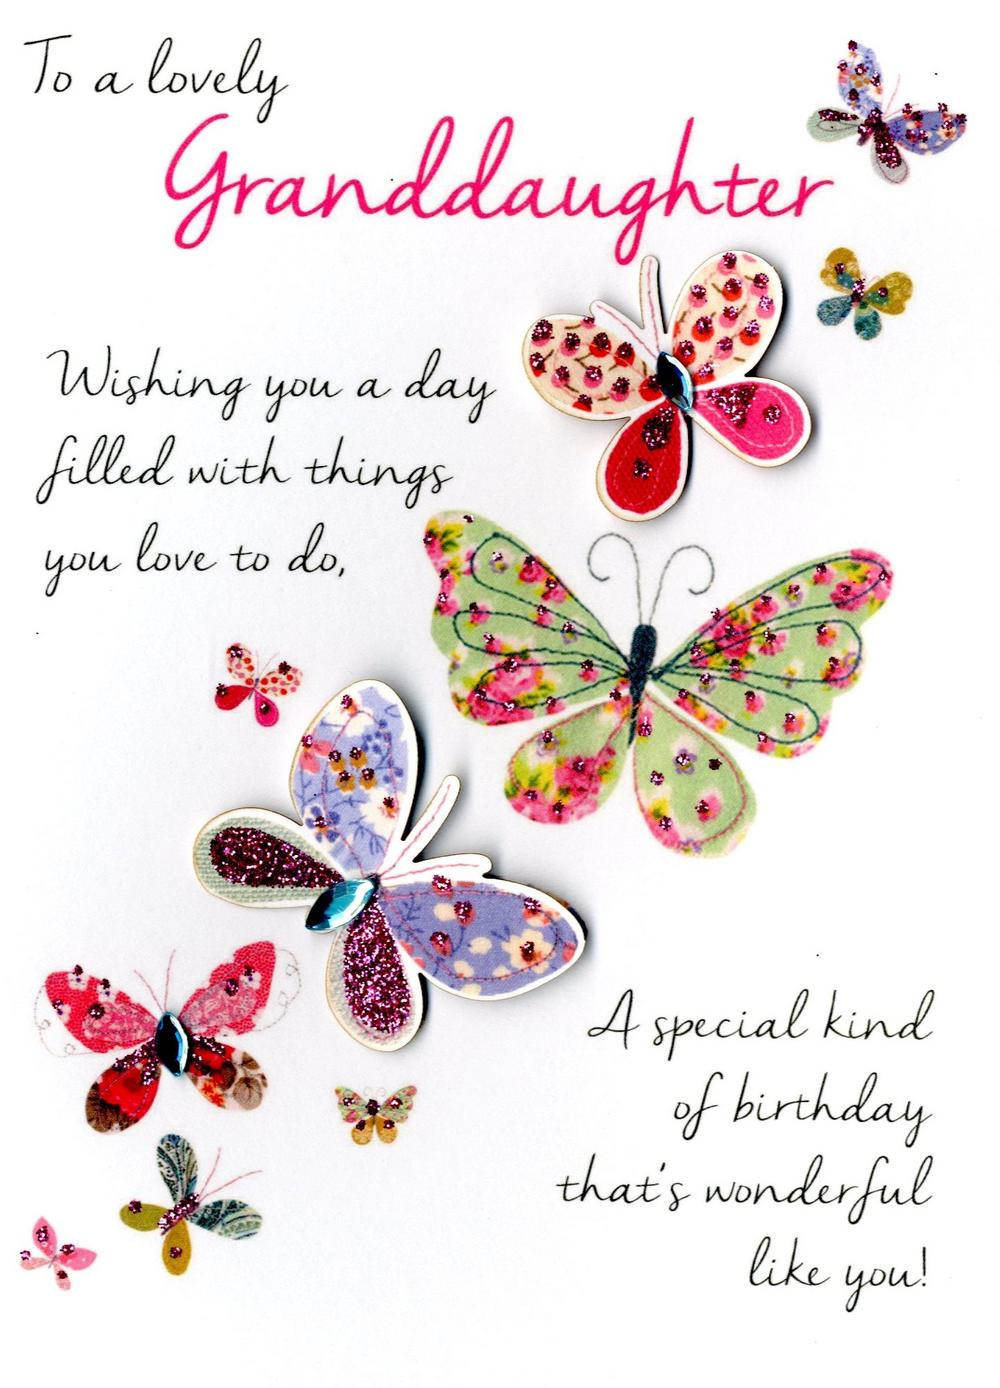 granddaughter birthday card images ; lrgscaleJT053